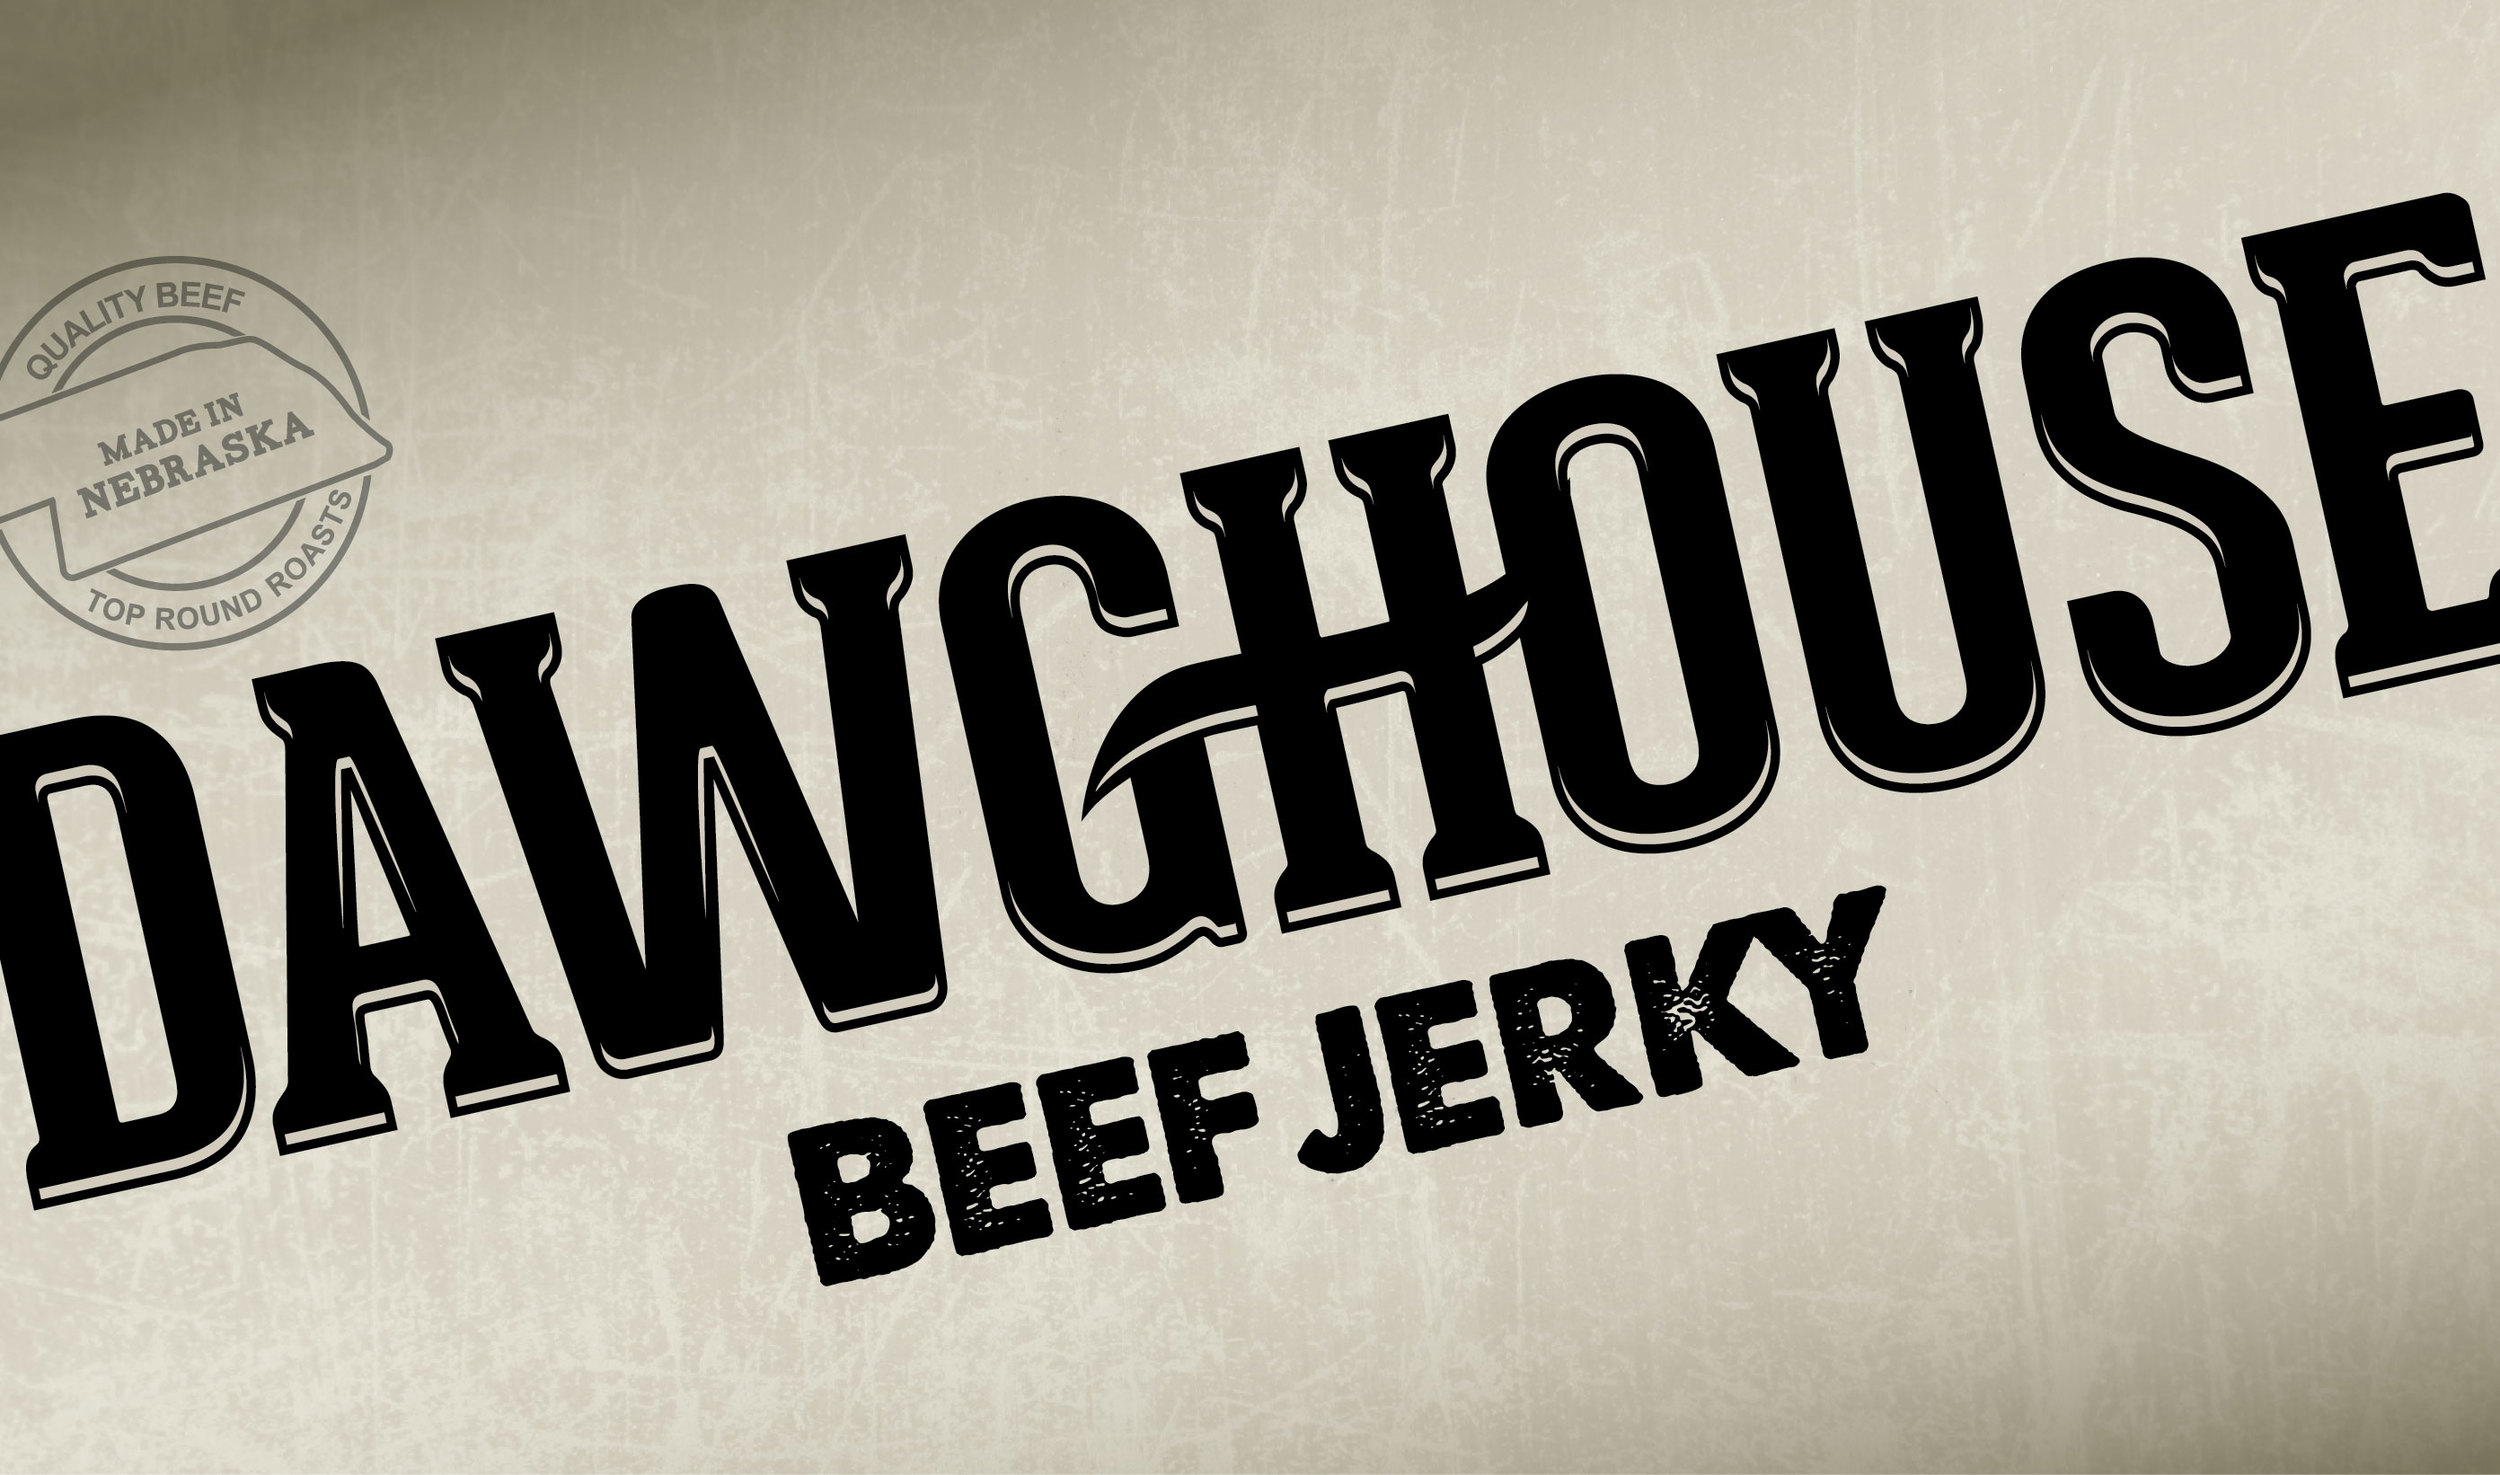 HS_CDBeefJerky-collections-03.jpg